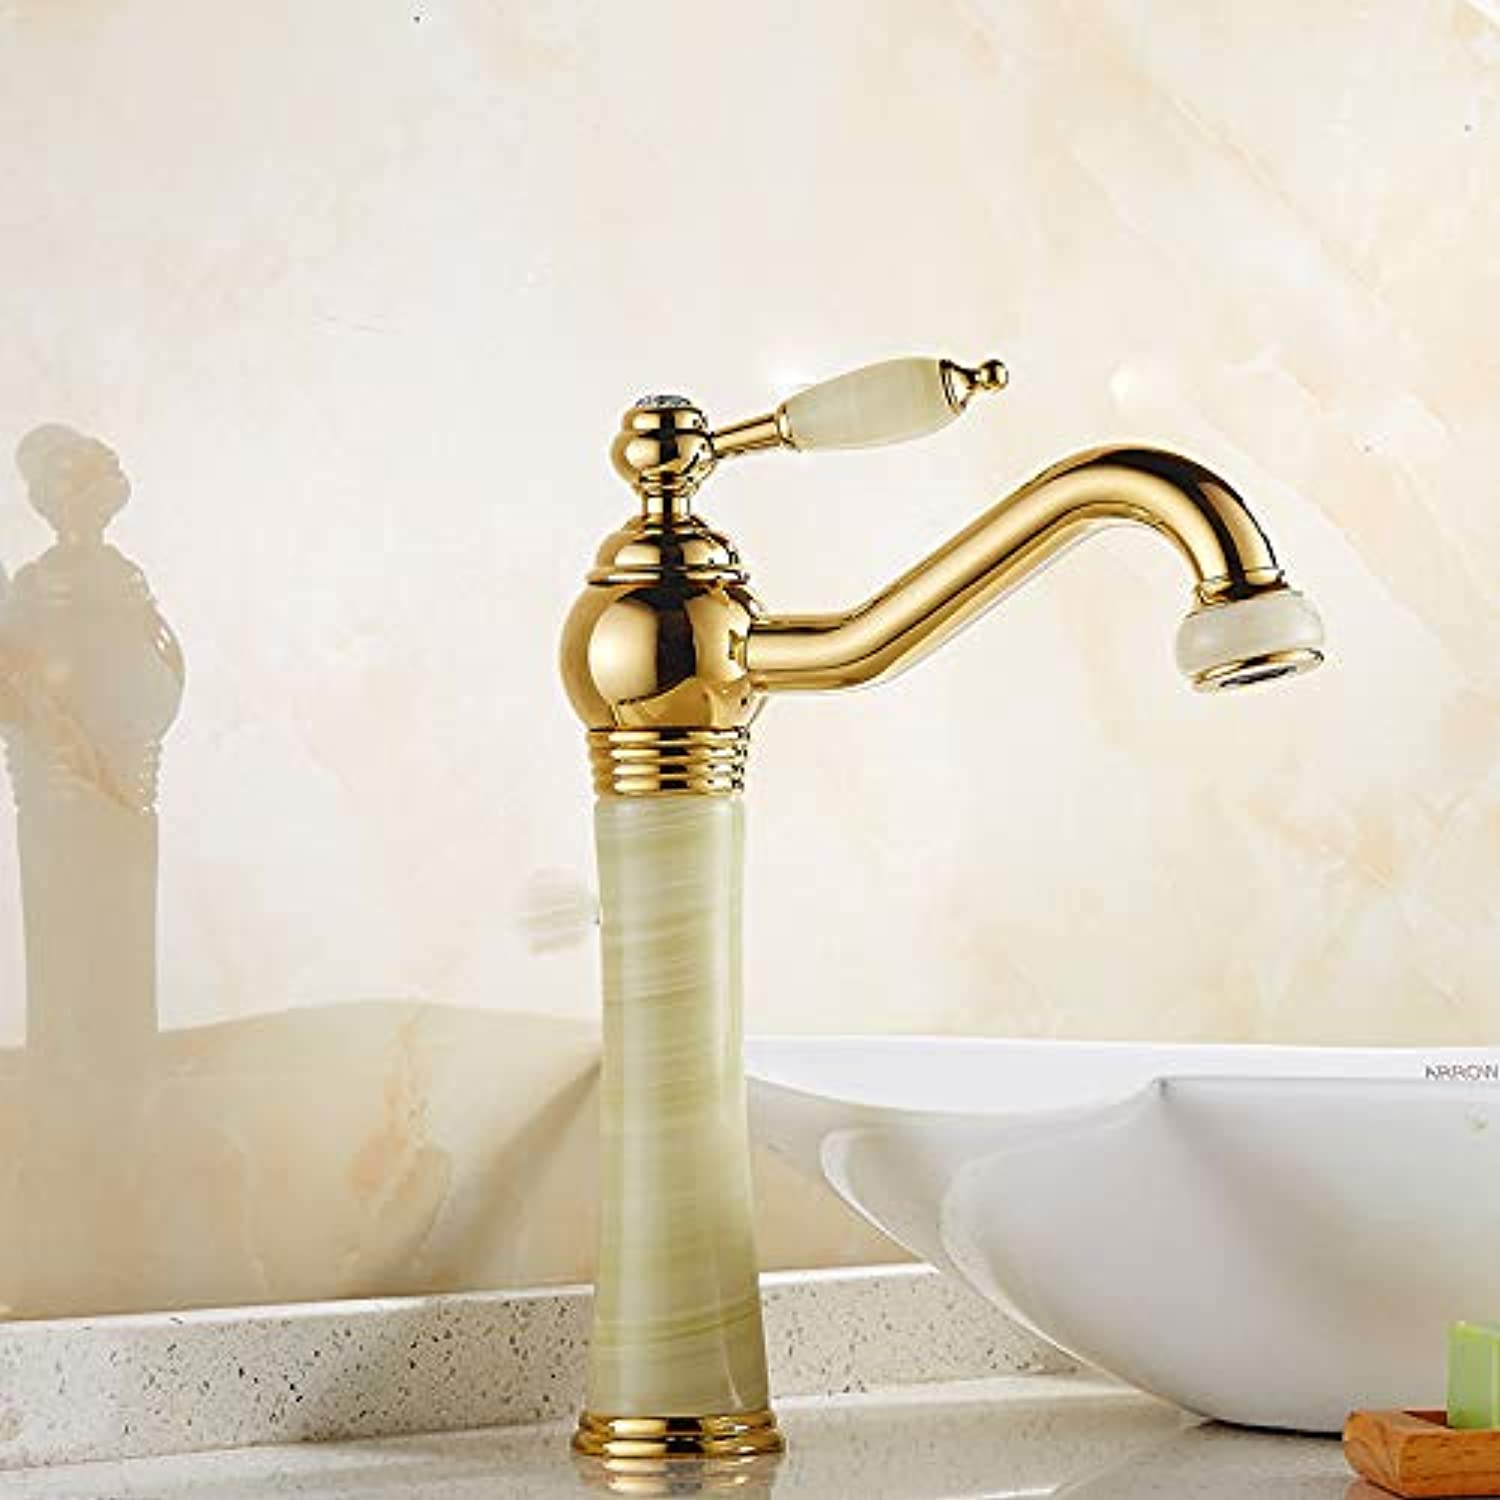 Hlluya Professional Sink Mixer Tap Kitchen Faucet The copper gold faucet hot and cold single hole basin basin sink vanity faucet, plus high golden Jade Belt Drill Faucet